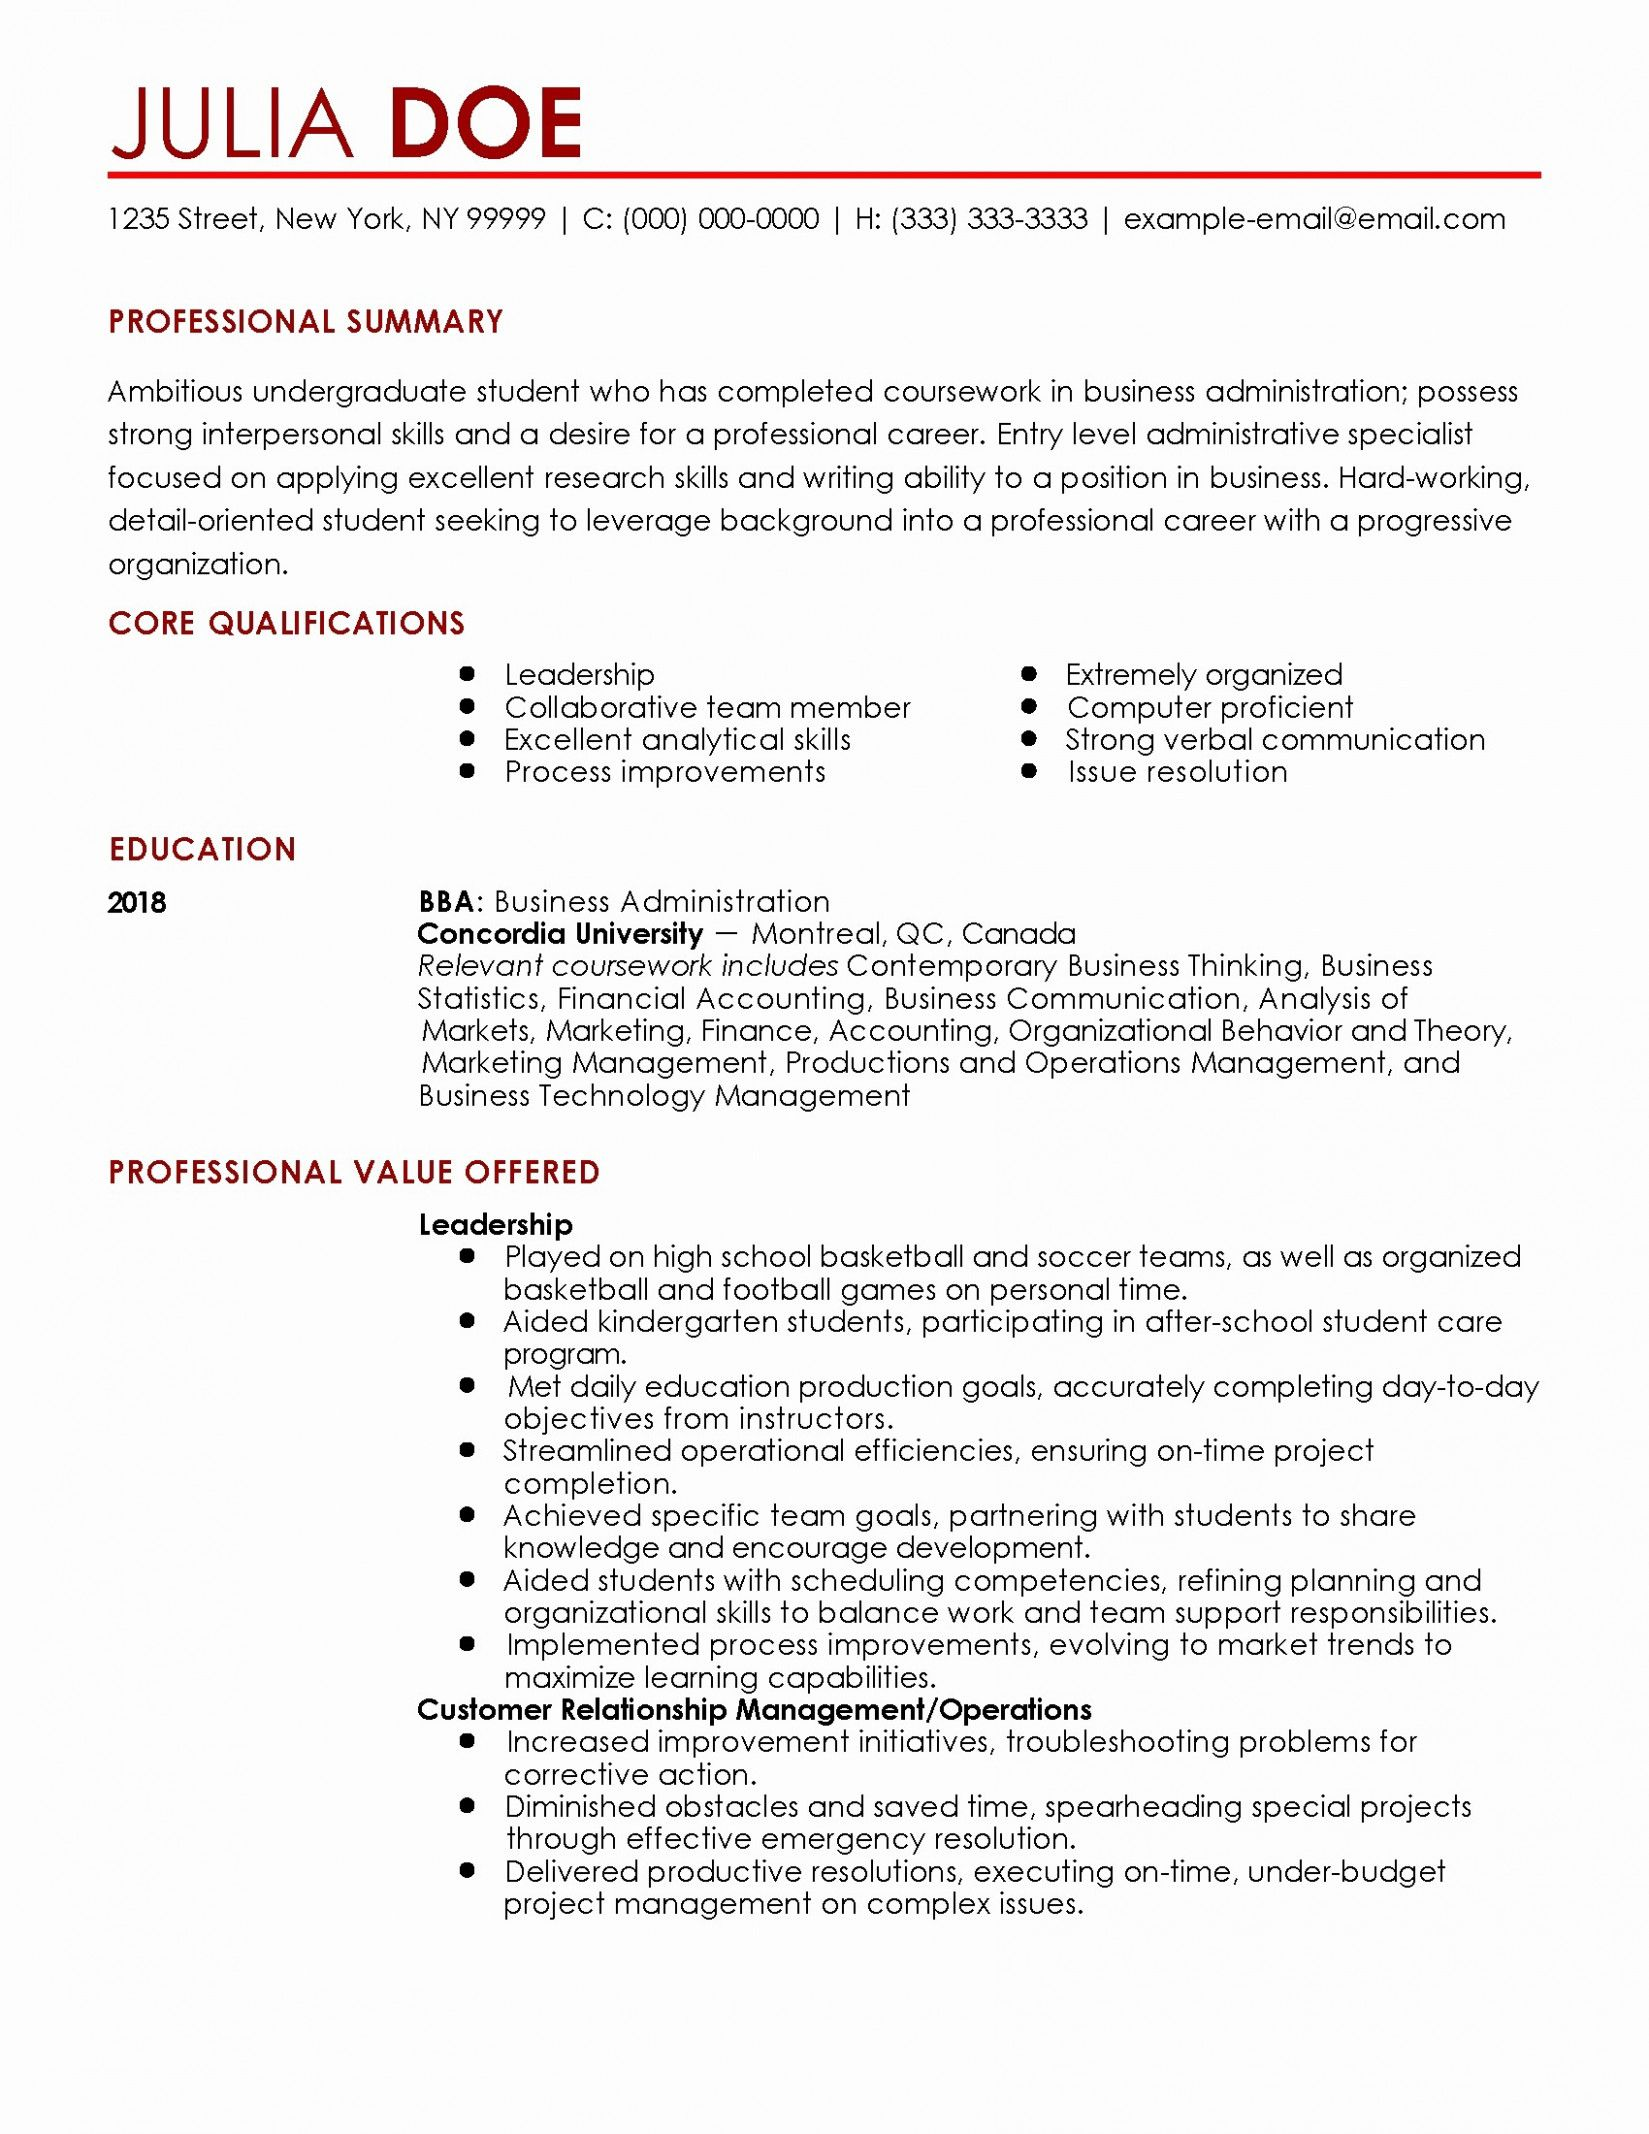 Beginner First Job Sample Resume Of 13 Newbie Job Utility Resume Pattern